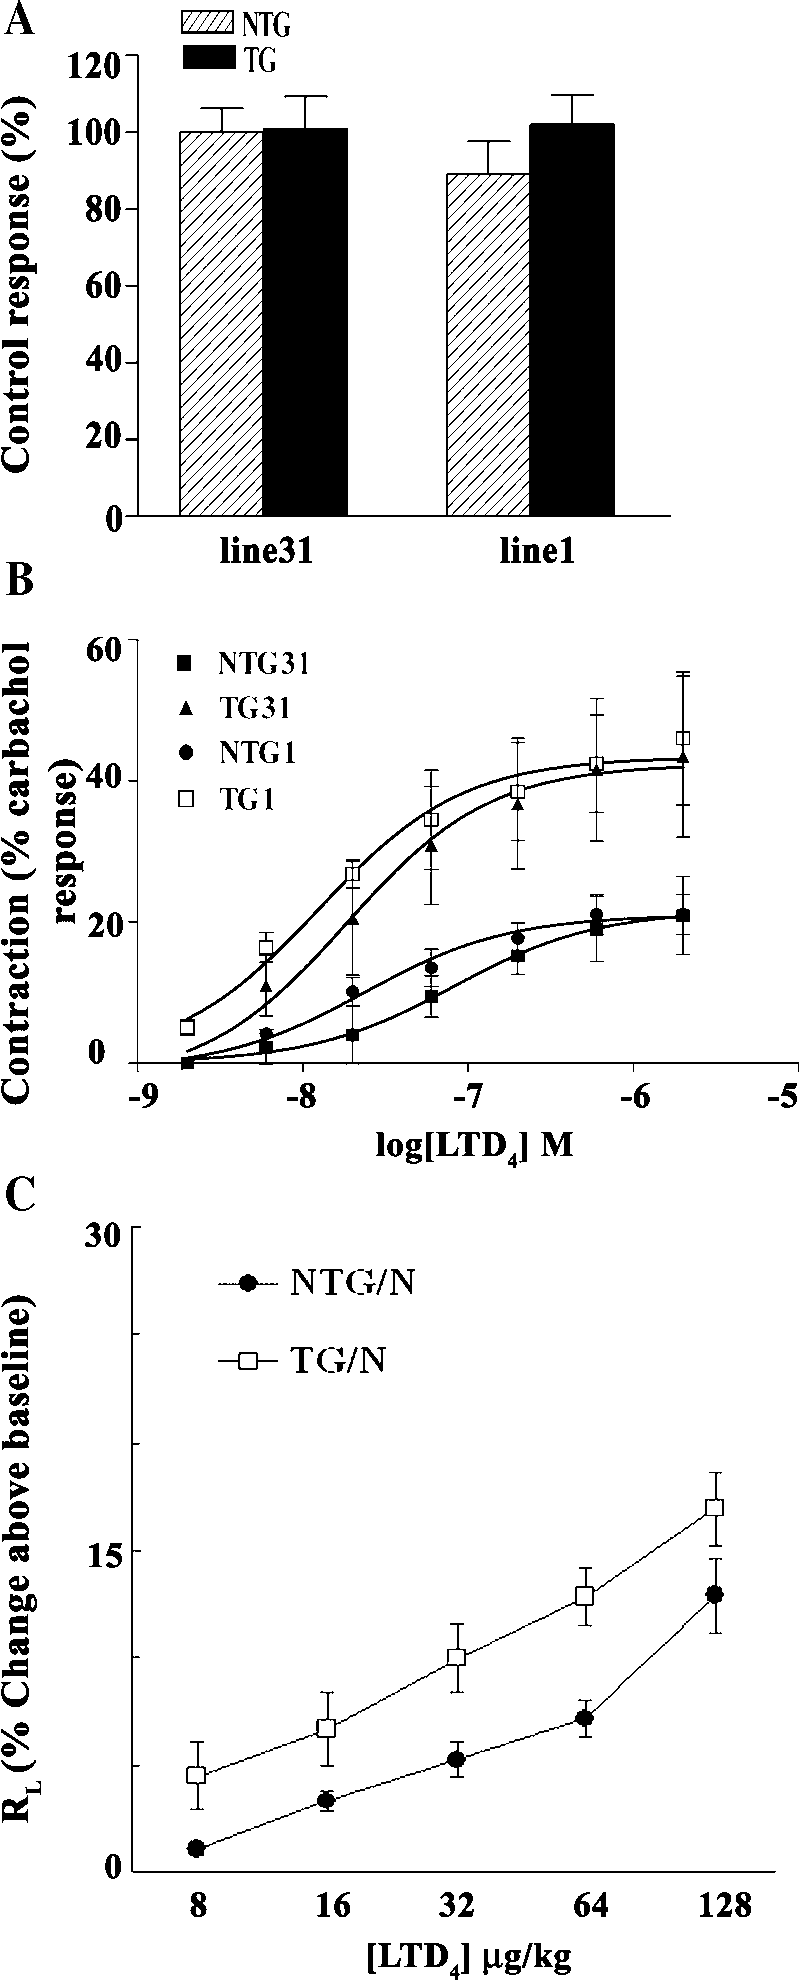 hight resolution of overexpression of hcyslt1r enhances force generation in tracheal rings upon ltd4 administration and increases airway resistance